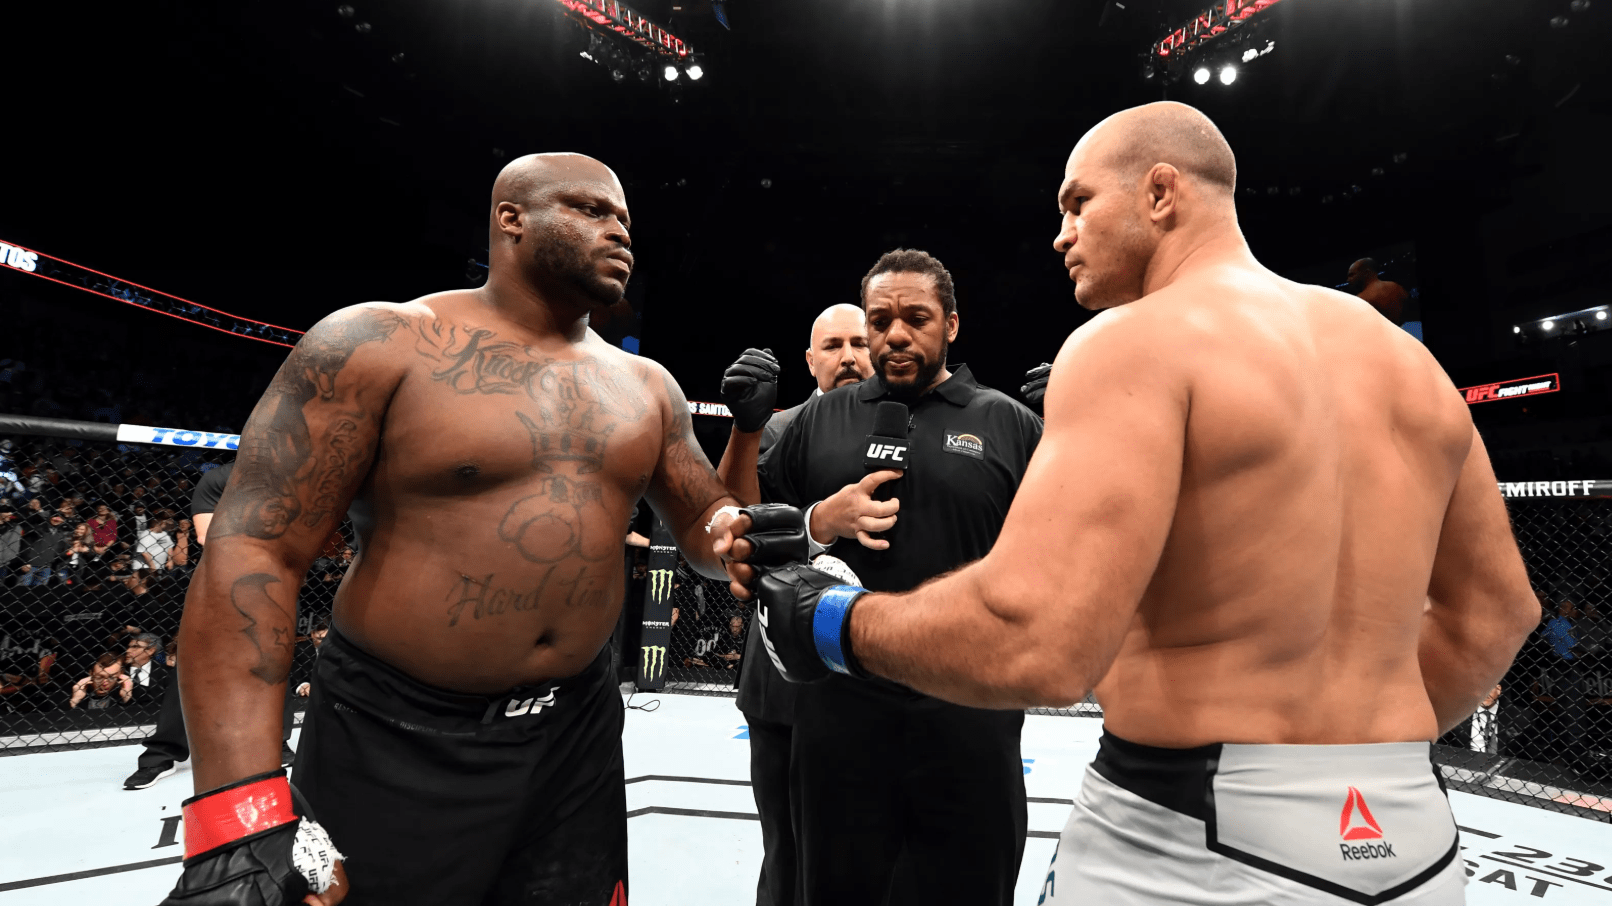 Two Huge Heavyweight Bouts Set To Go Down In November